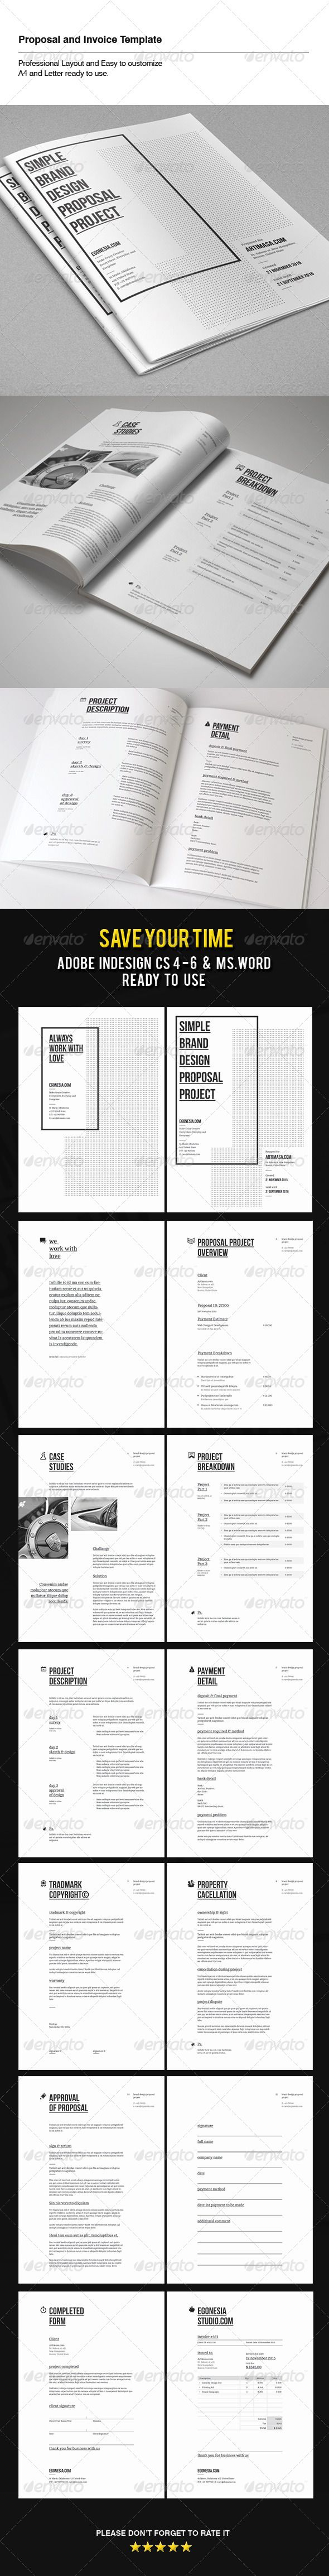 14 best images about write a cleaning bid proposal and